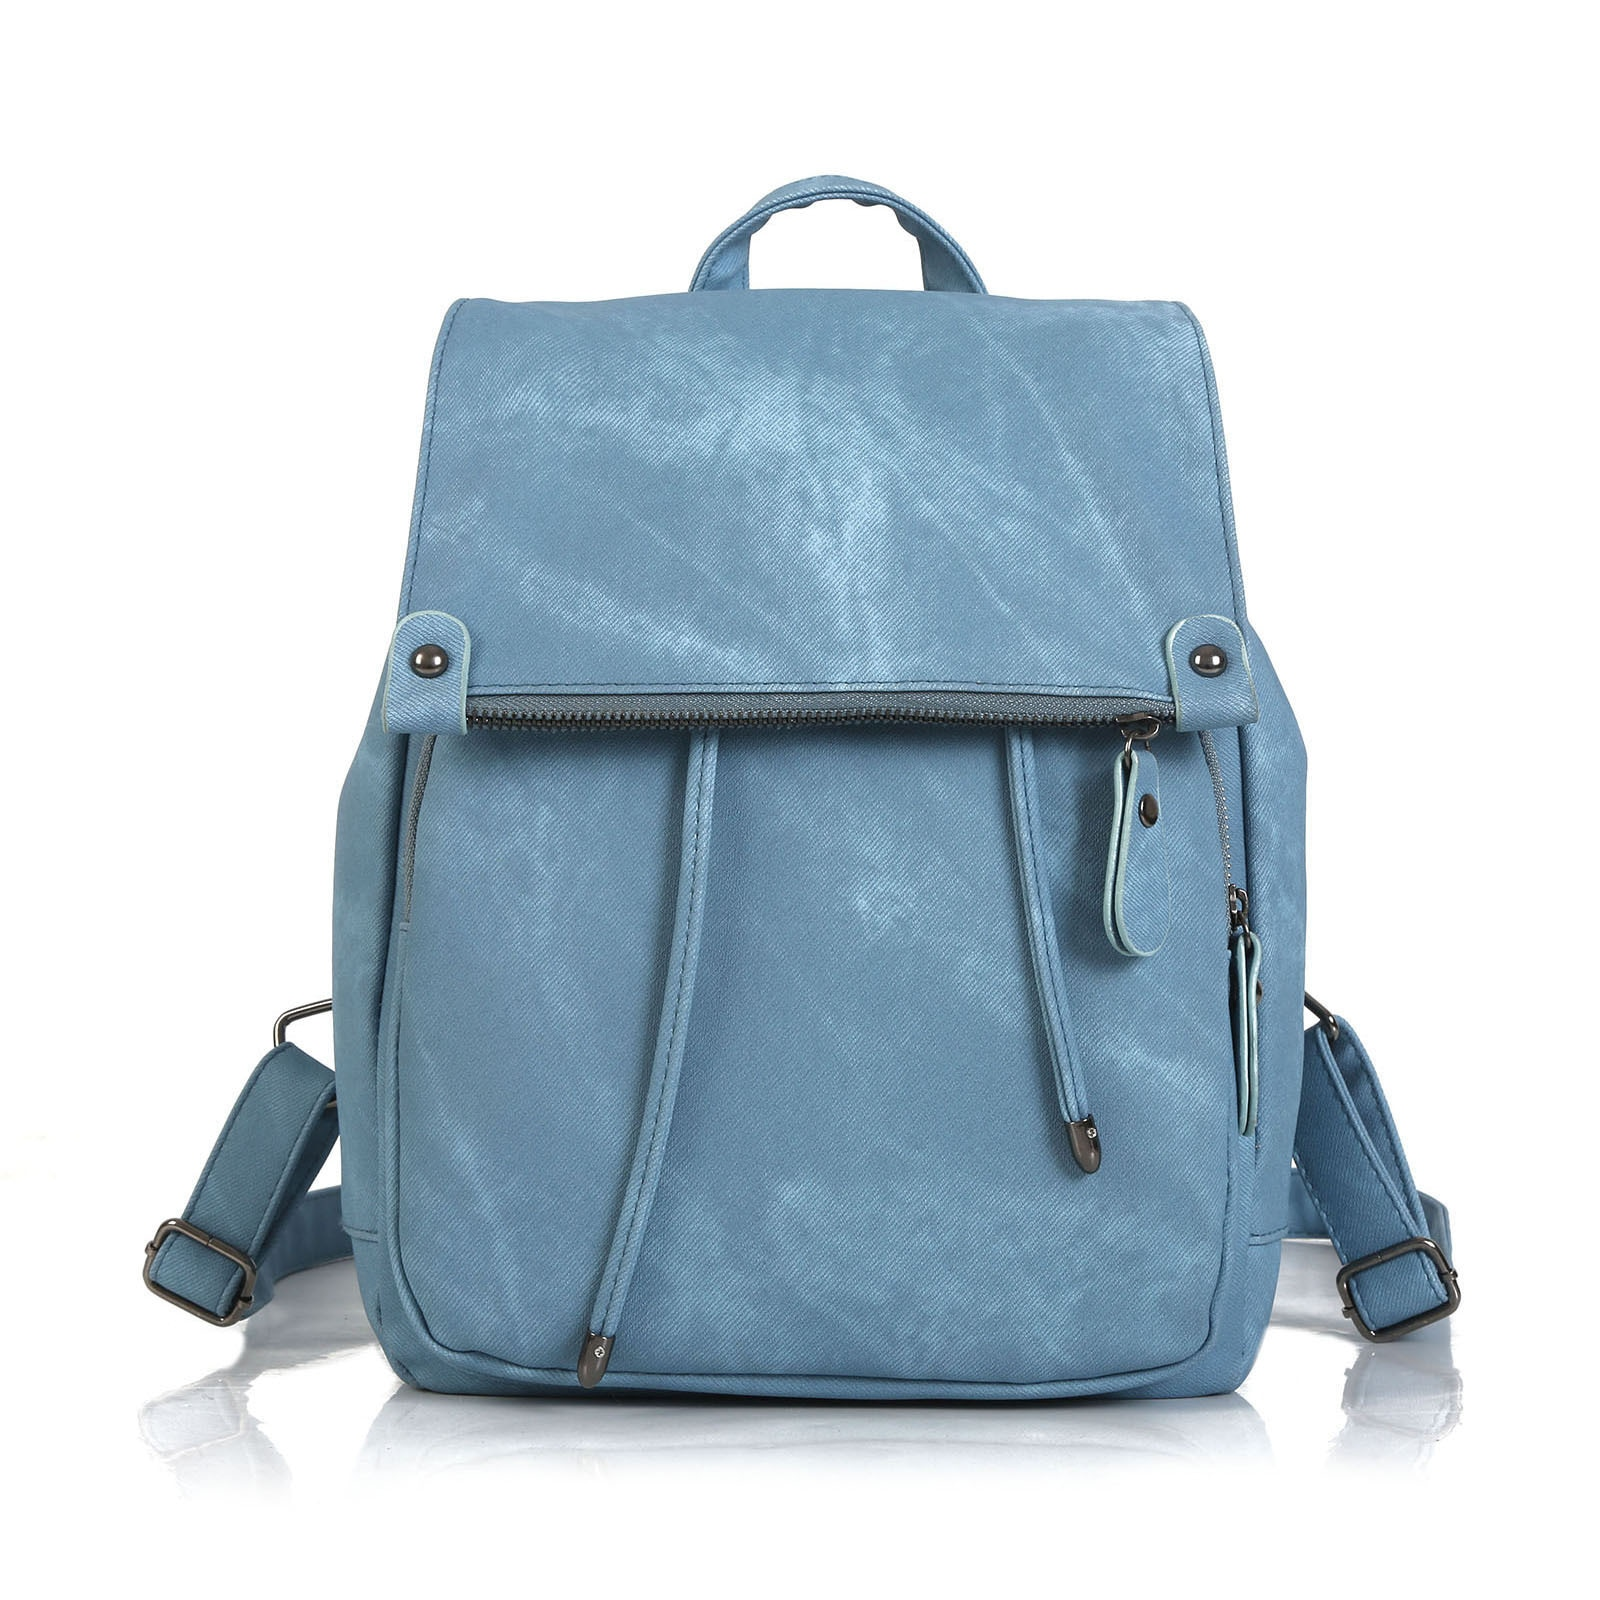 Summer Handbags Fashion College Style Backpack  Women's Bag Fashion Solid Color Bag Simple Temperame